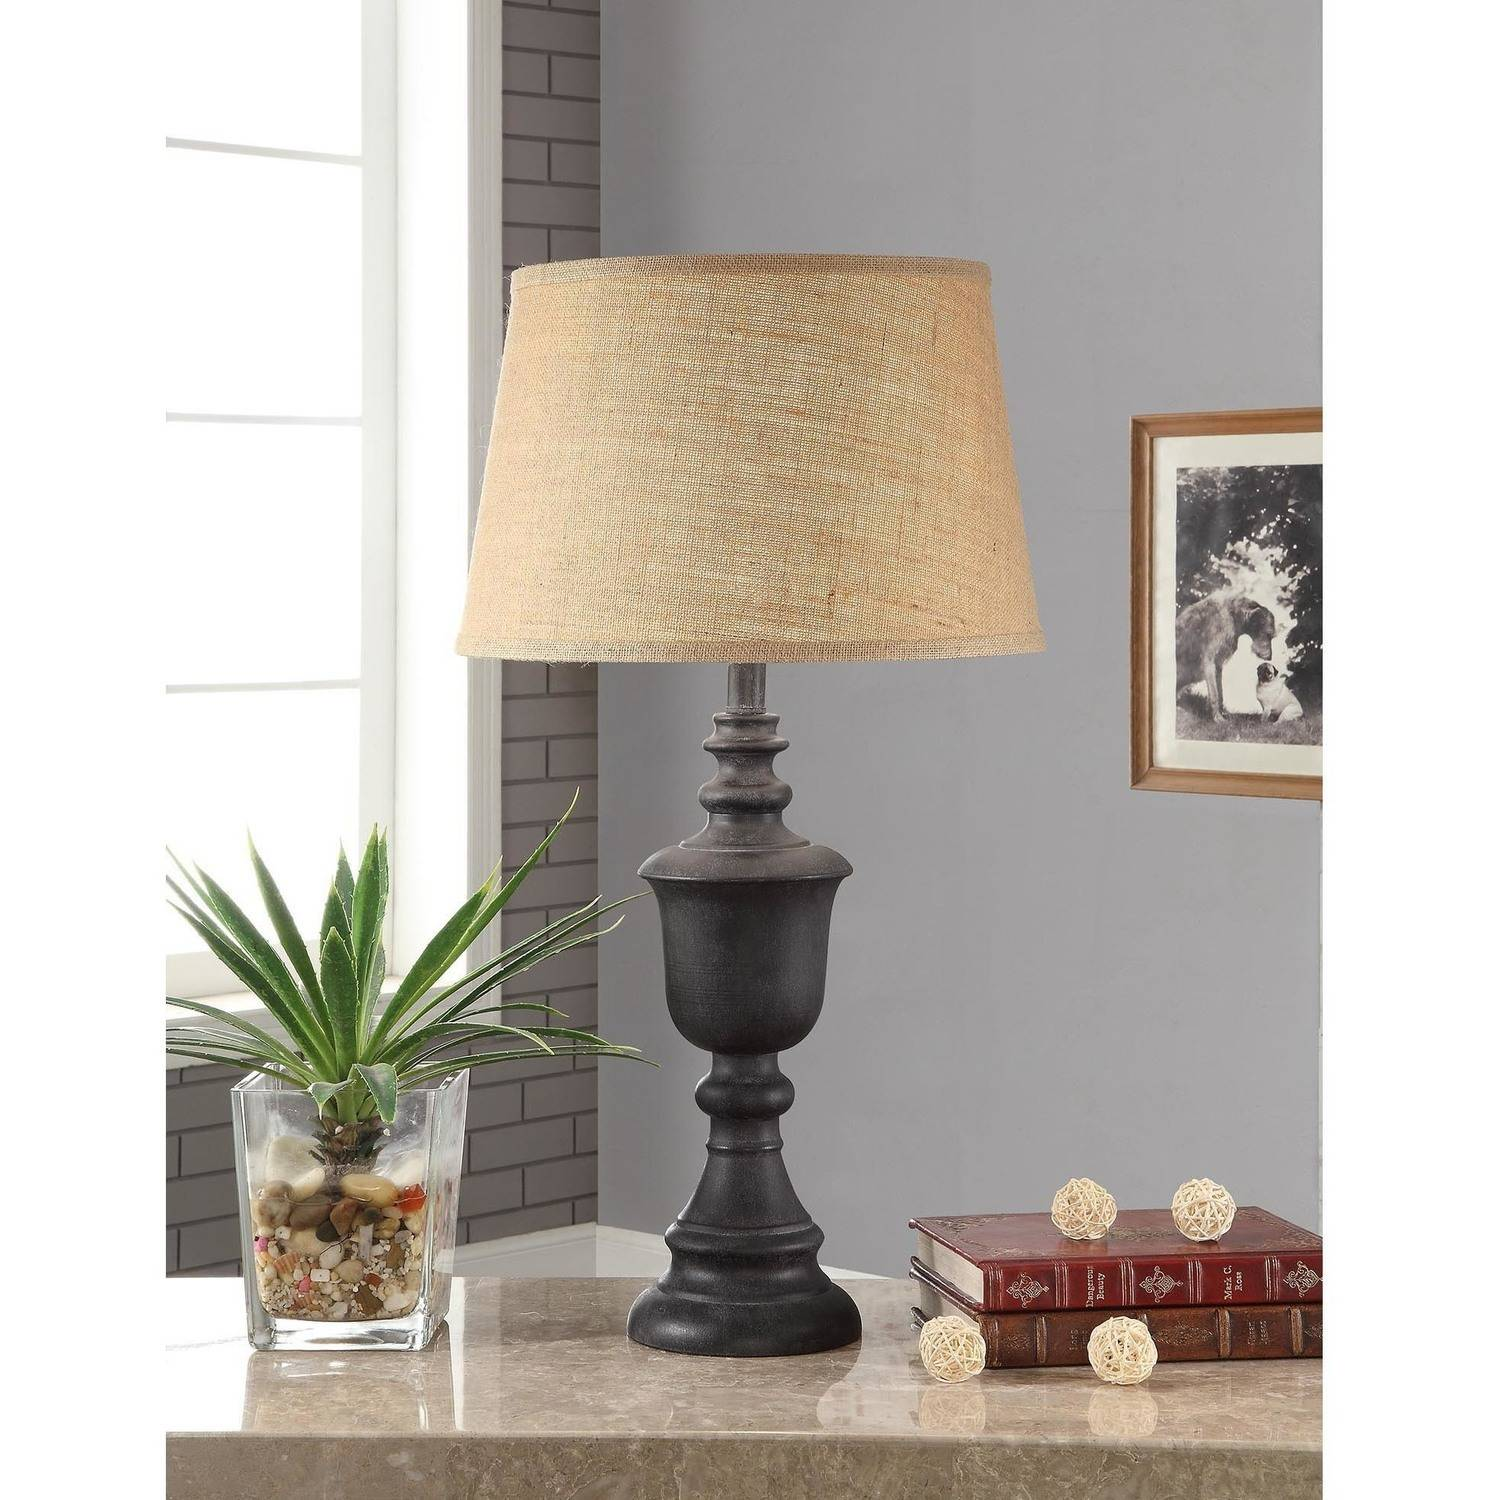 Better Homes and Gardens Rustic Wood Finish Table Lamp by Mastercraft Distribution USA Inc